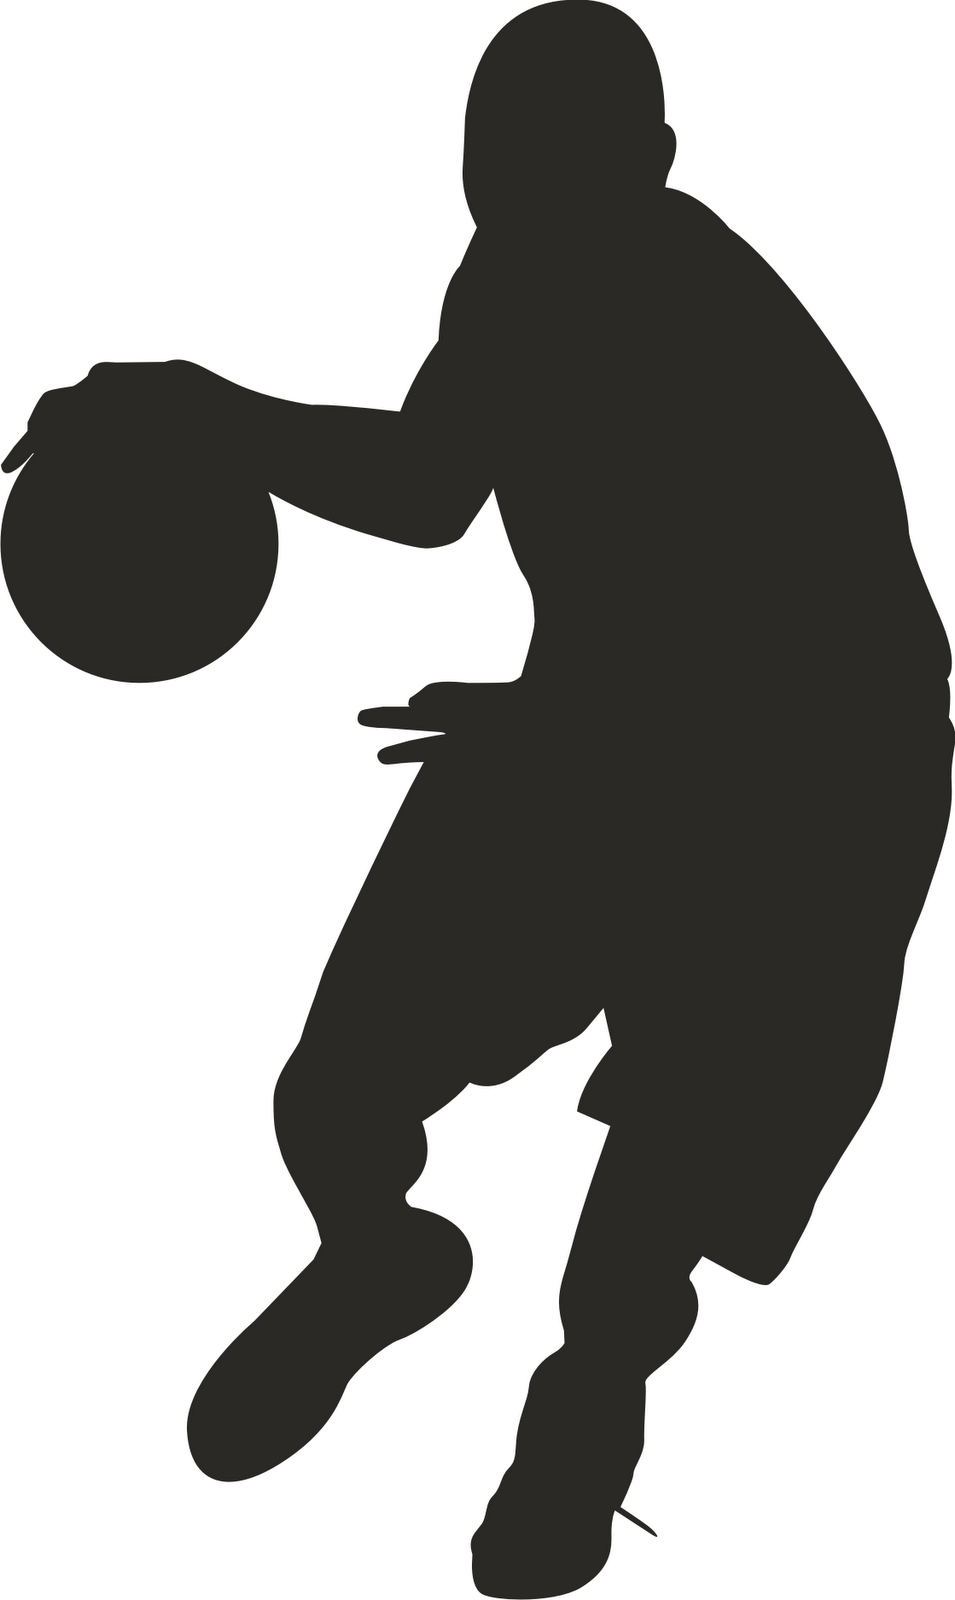 Basketball Outline Clip Art - ClipArt Best - ClipArt Best